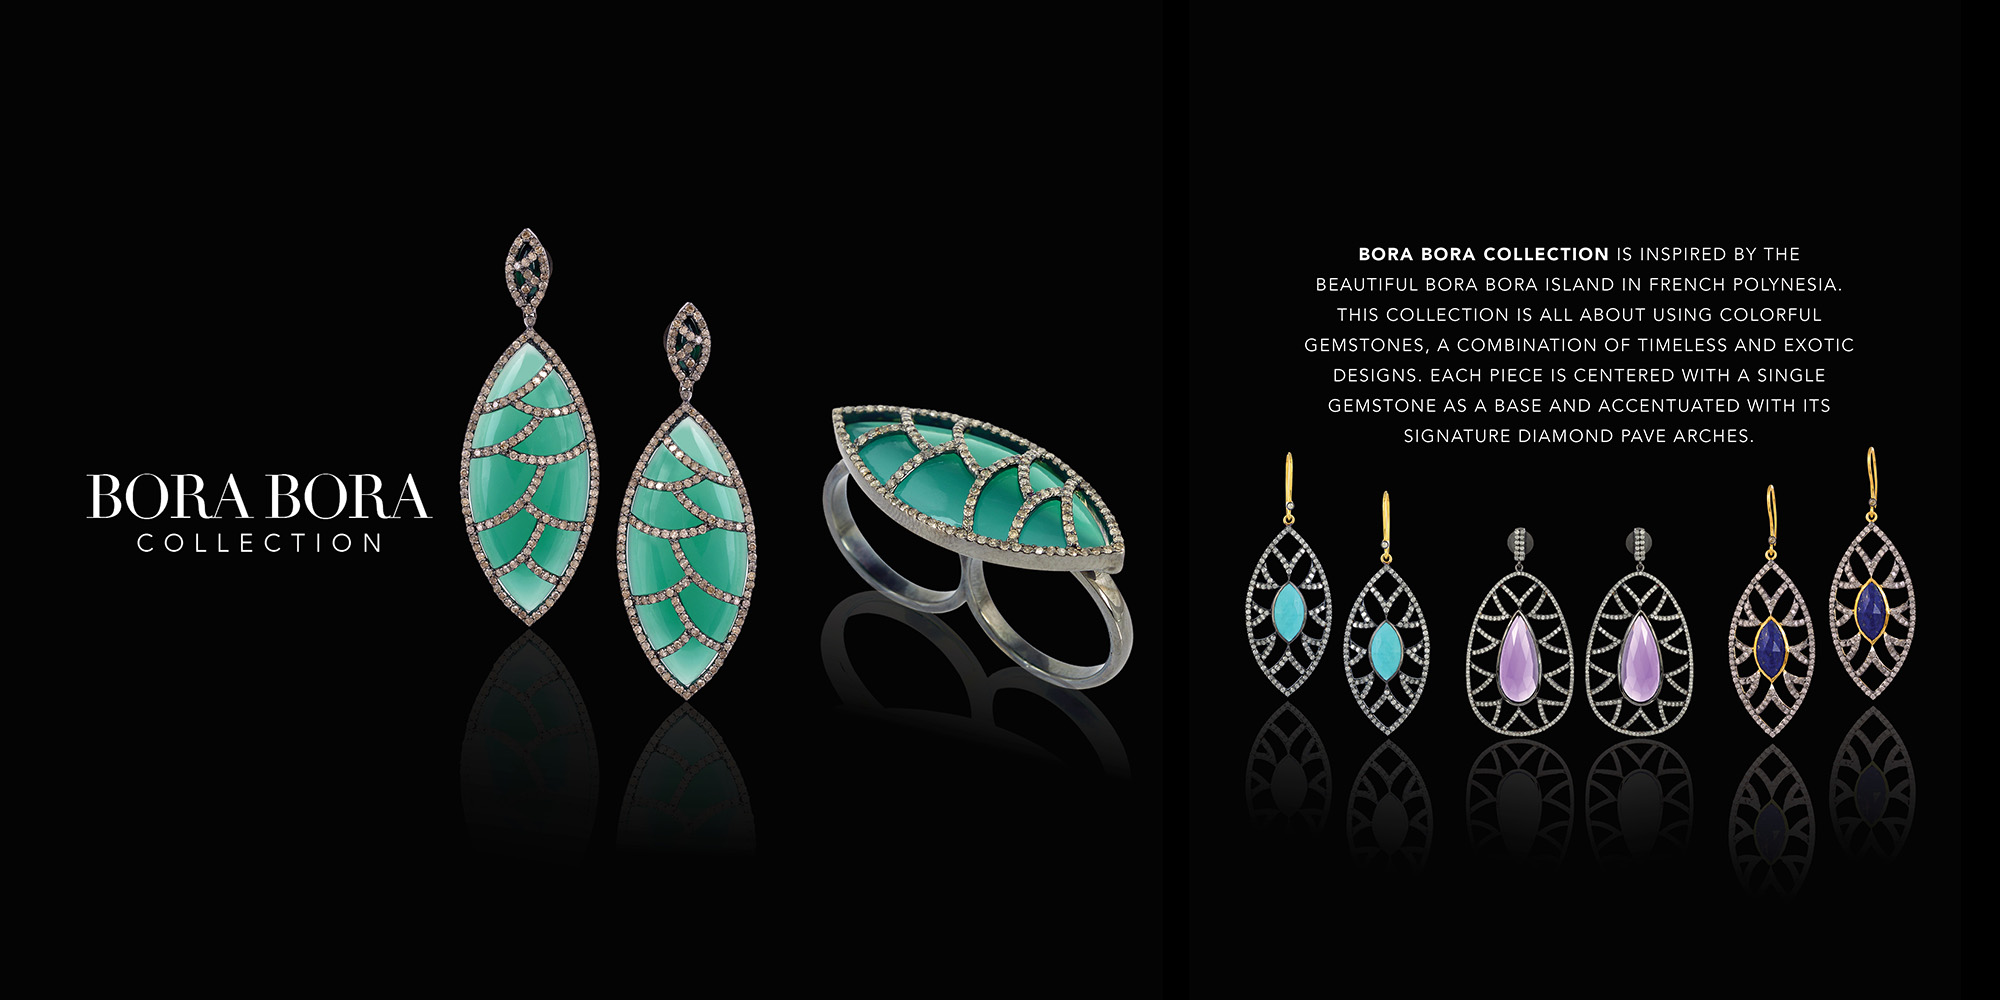 BORA BORA COLLECTION is inspired by the beautiful BORA BORAIsland in French Polynesia. This Collection is all about using colorful gemstones, a combination of timeless and exotic designs. Each piece is centered with a single gemstone as a base and accentuated with its signature diamond pave arches.